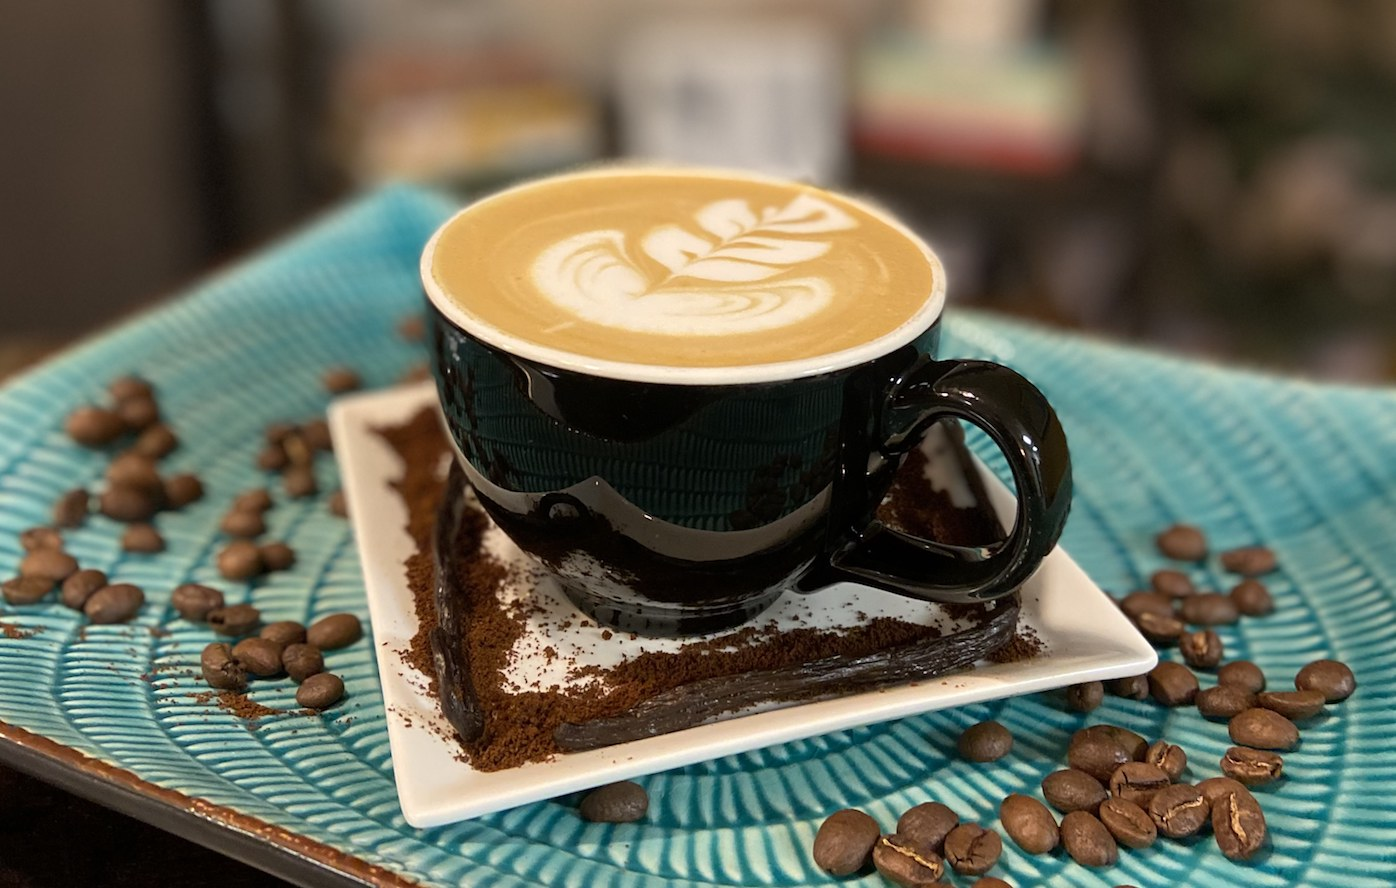 A Vanilla Latte on a blue plate with vanilla beans